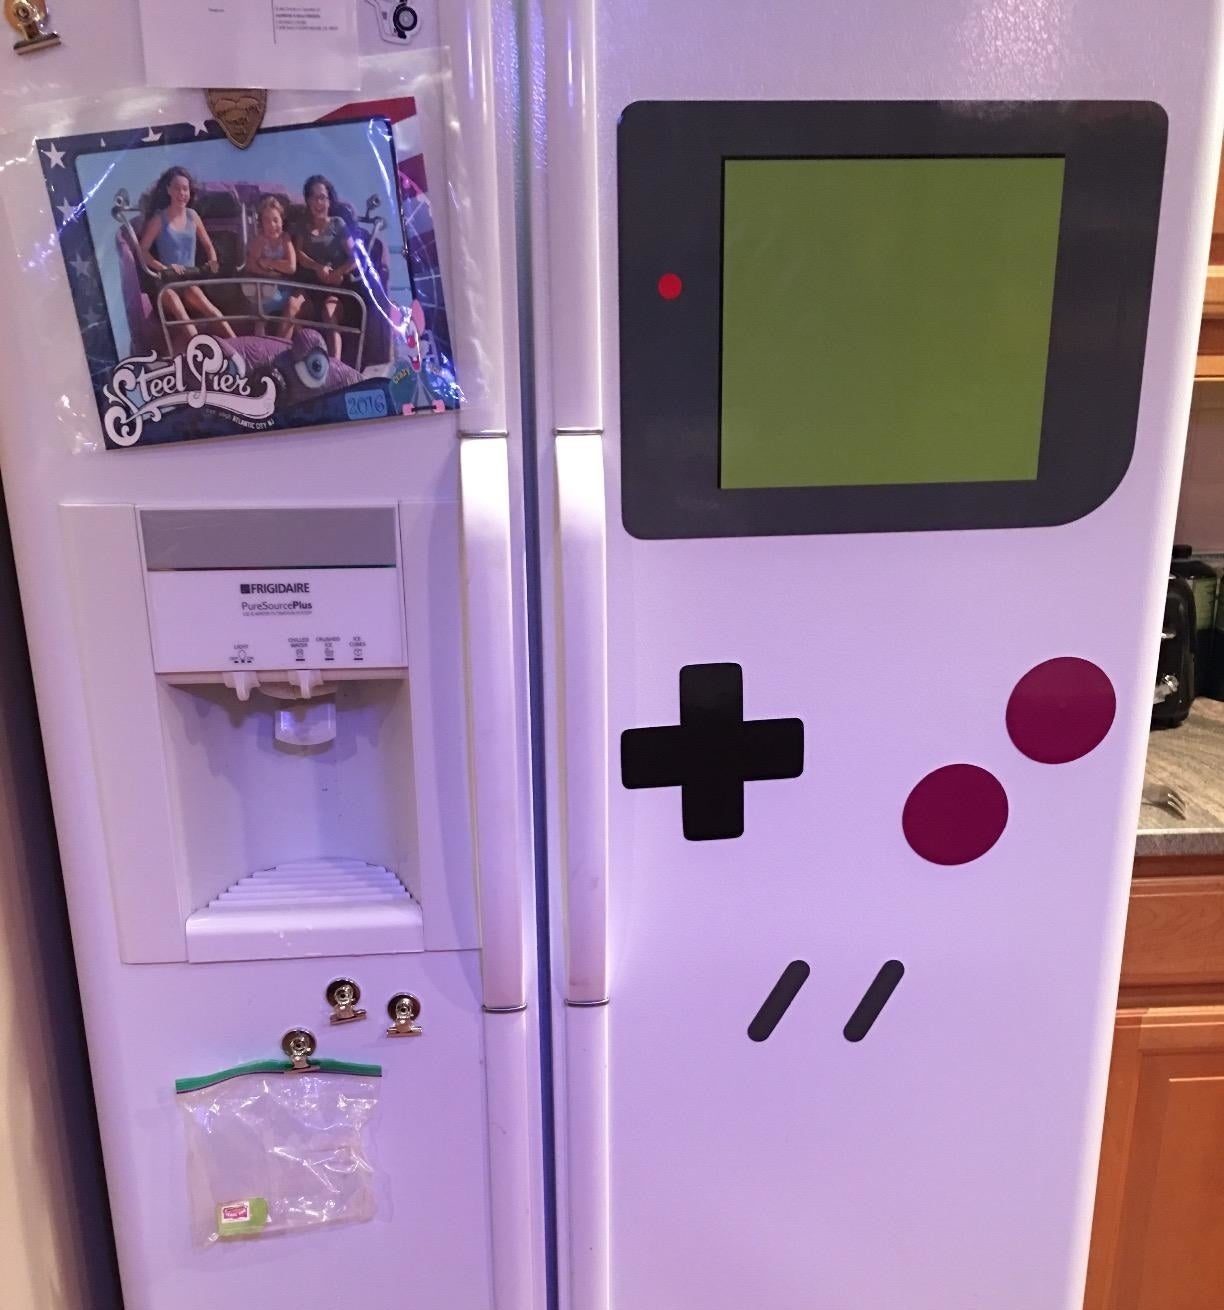 The kitchen magnets arranged to make the side of a fridge look like a game boy